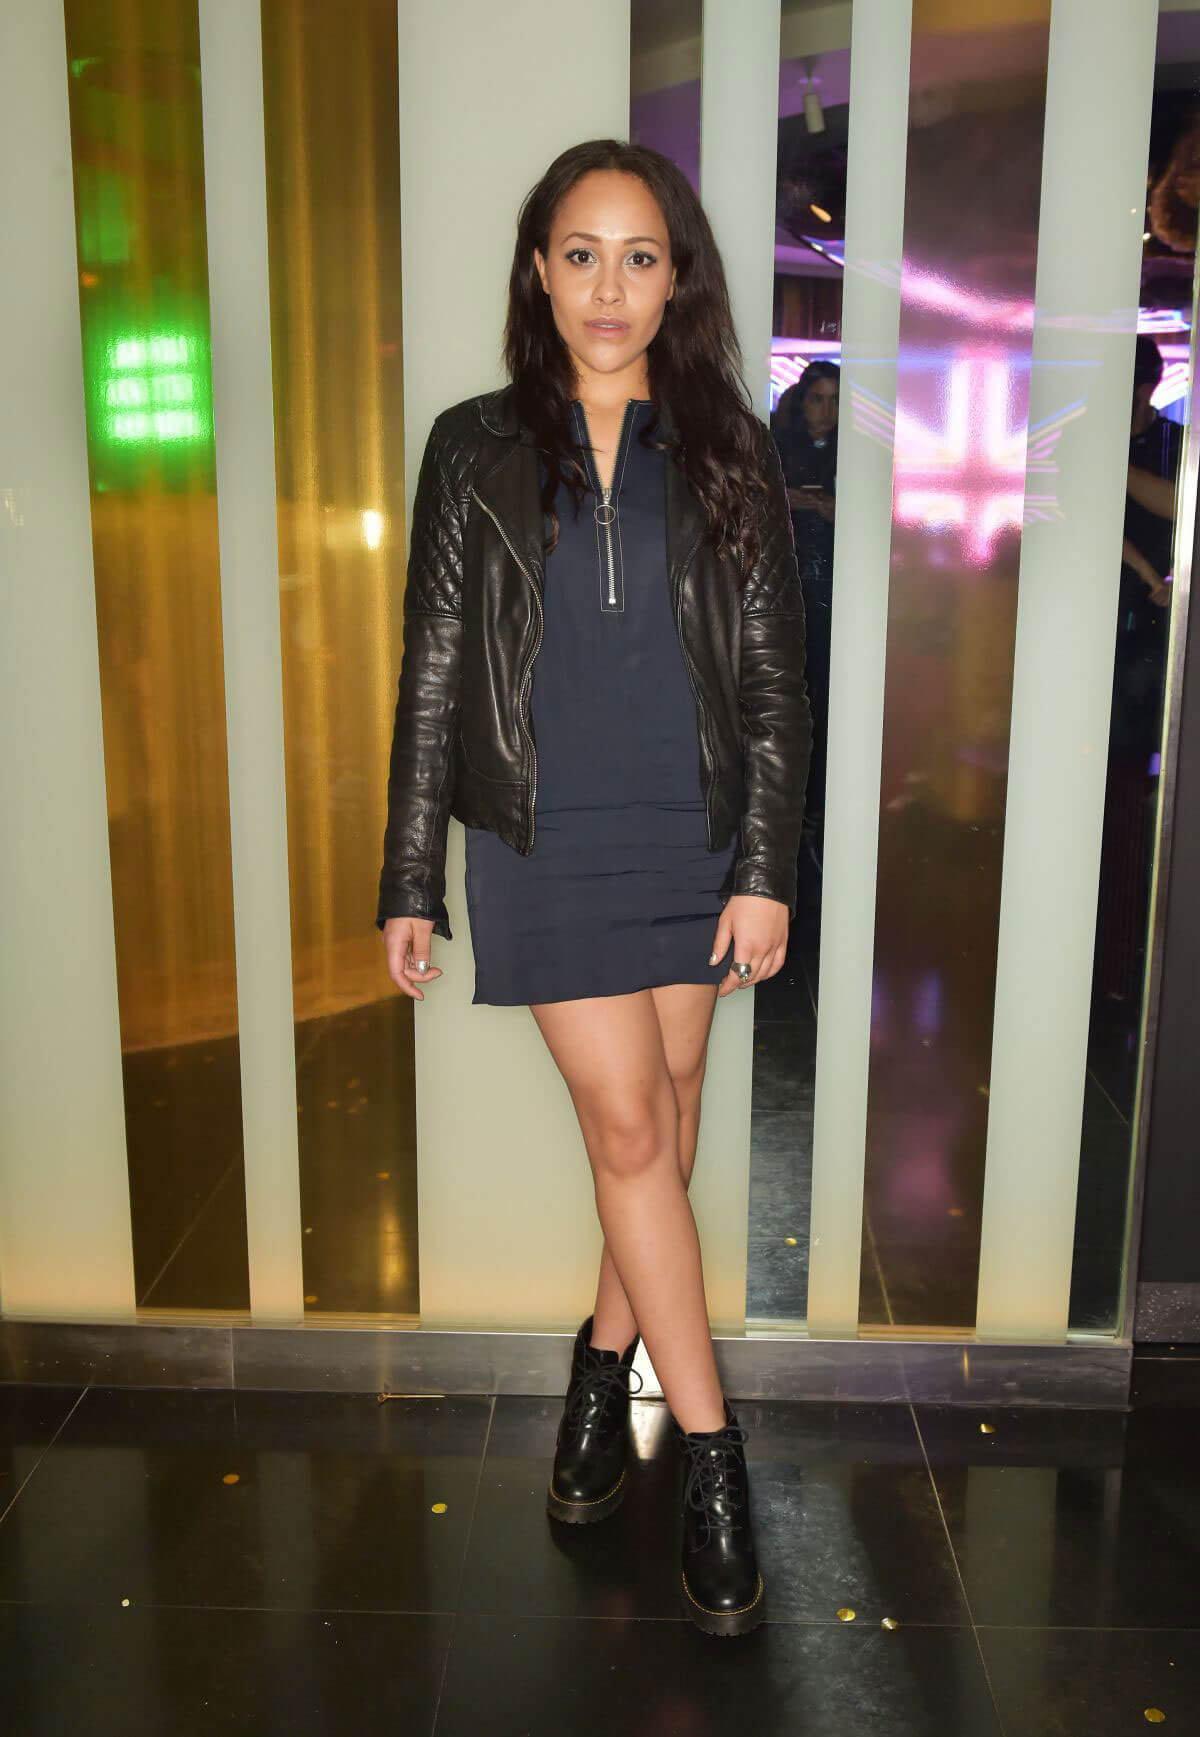 Tanya Fear Stills at Launch of Perception at W in London